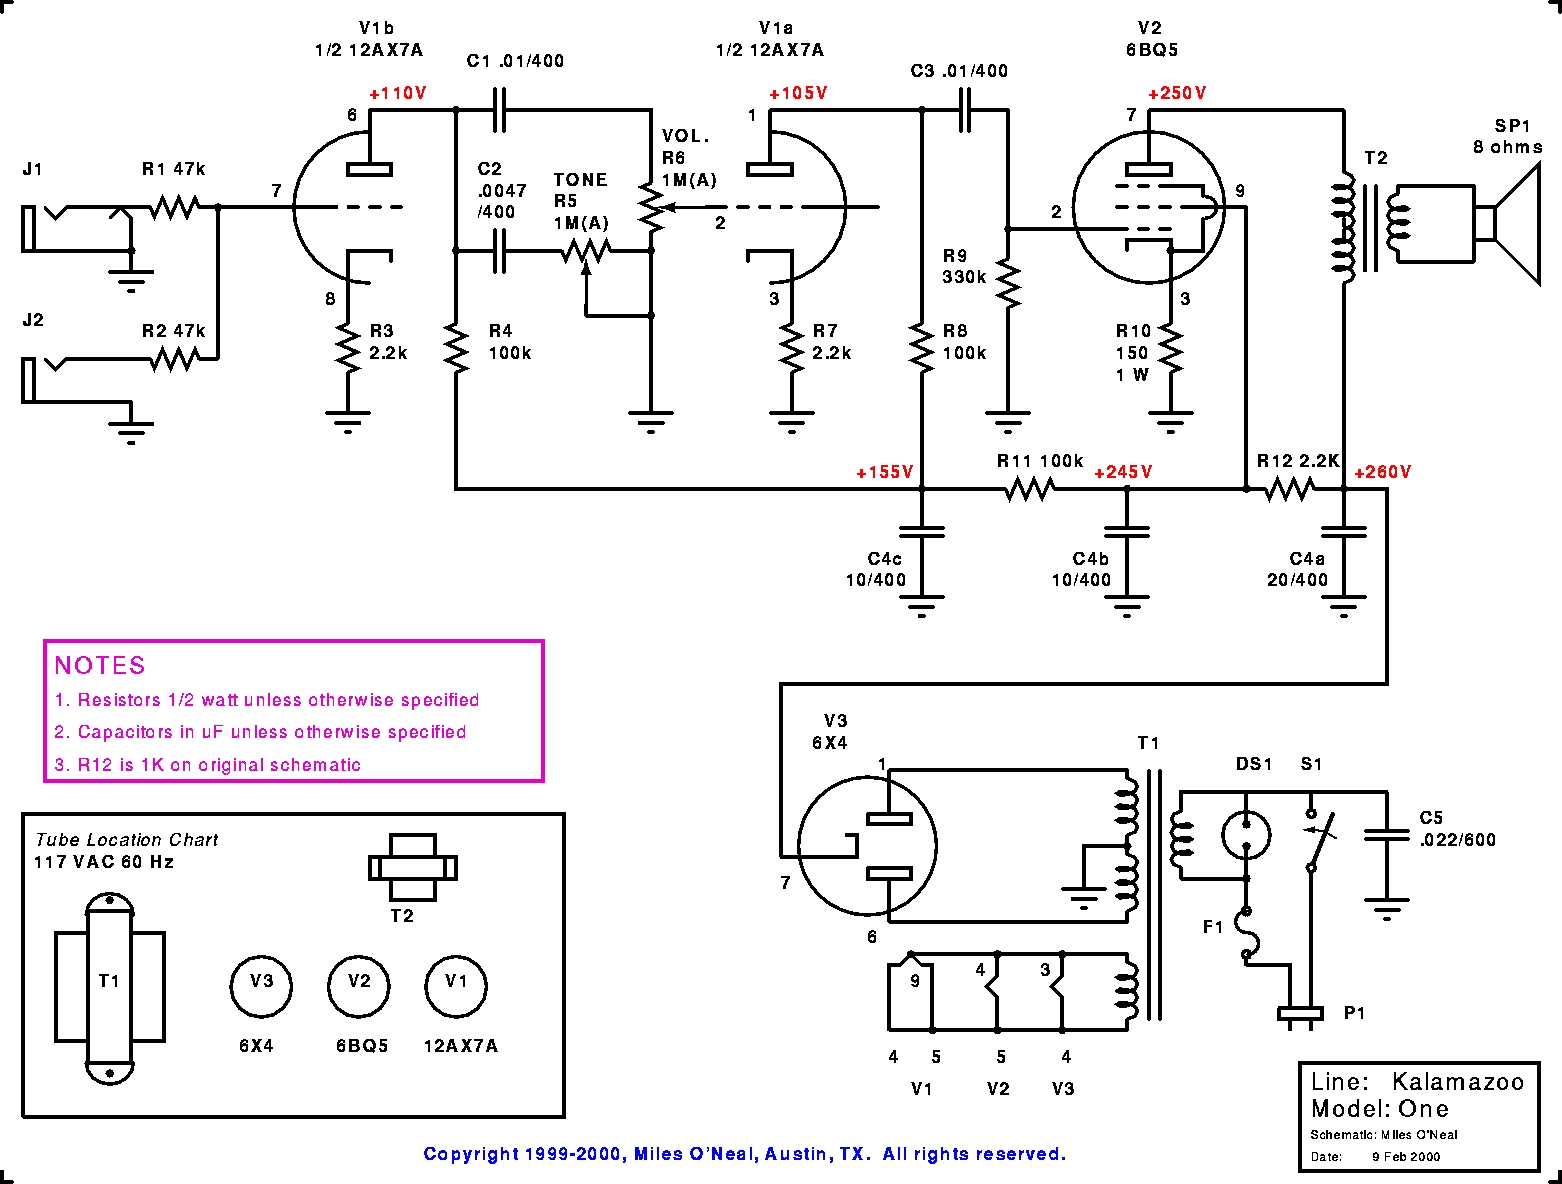 schematic design html with Schem on Smart Home Wiring Diagram Pdf furthermore Schem as well Residential Design also 06 Railway ballast together with So.